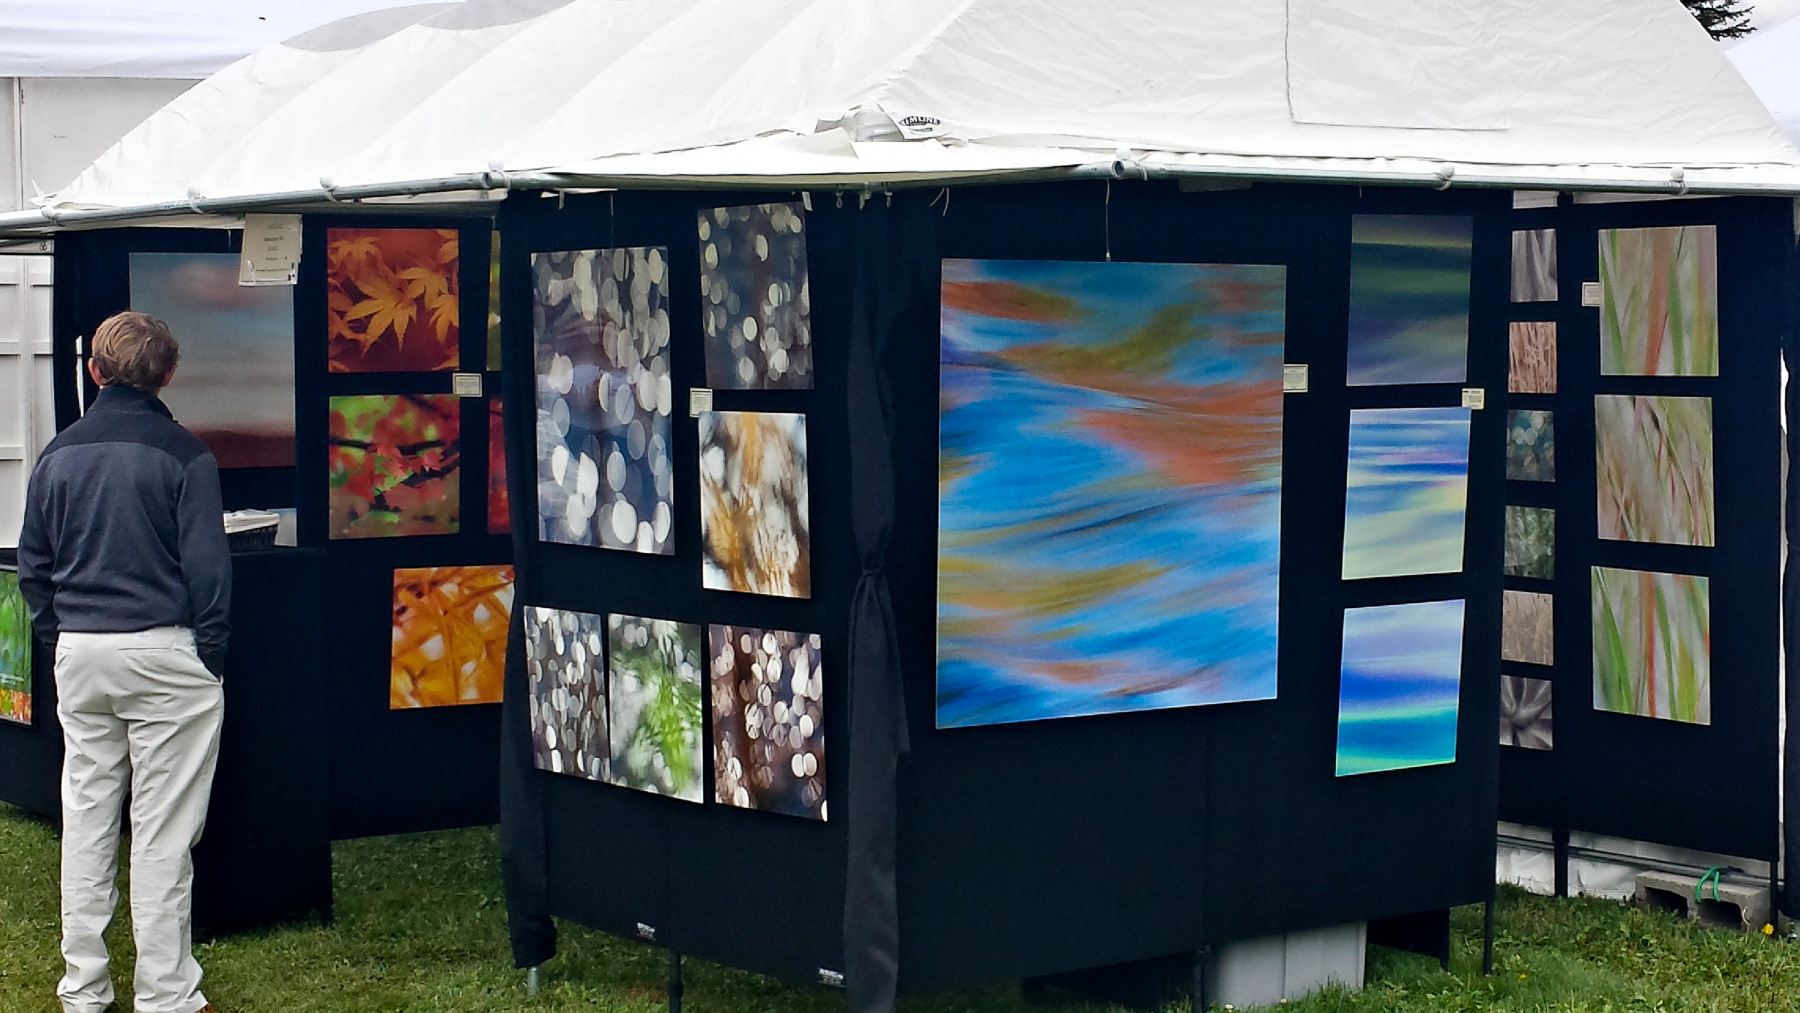 Art show display at Sun Valley, ID | Ketcham | ID | USA - ©  - All Rights Reserved Worldwide